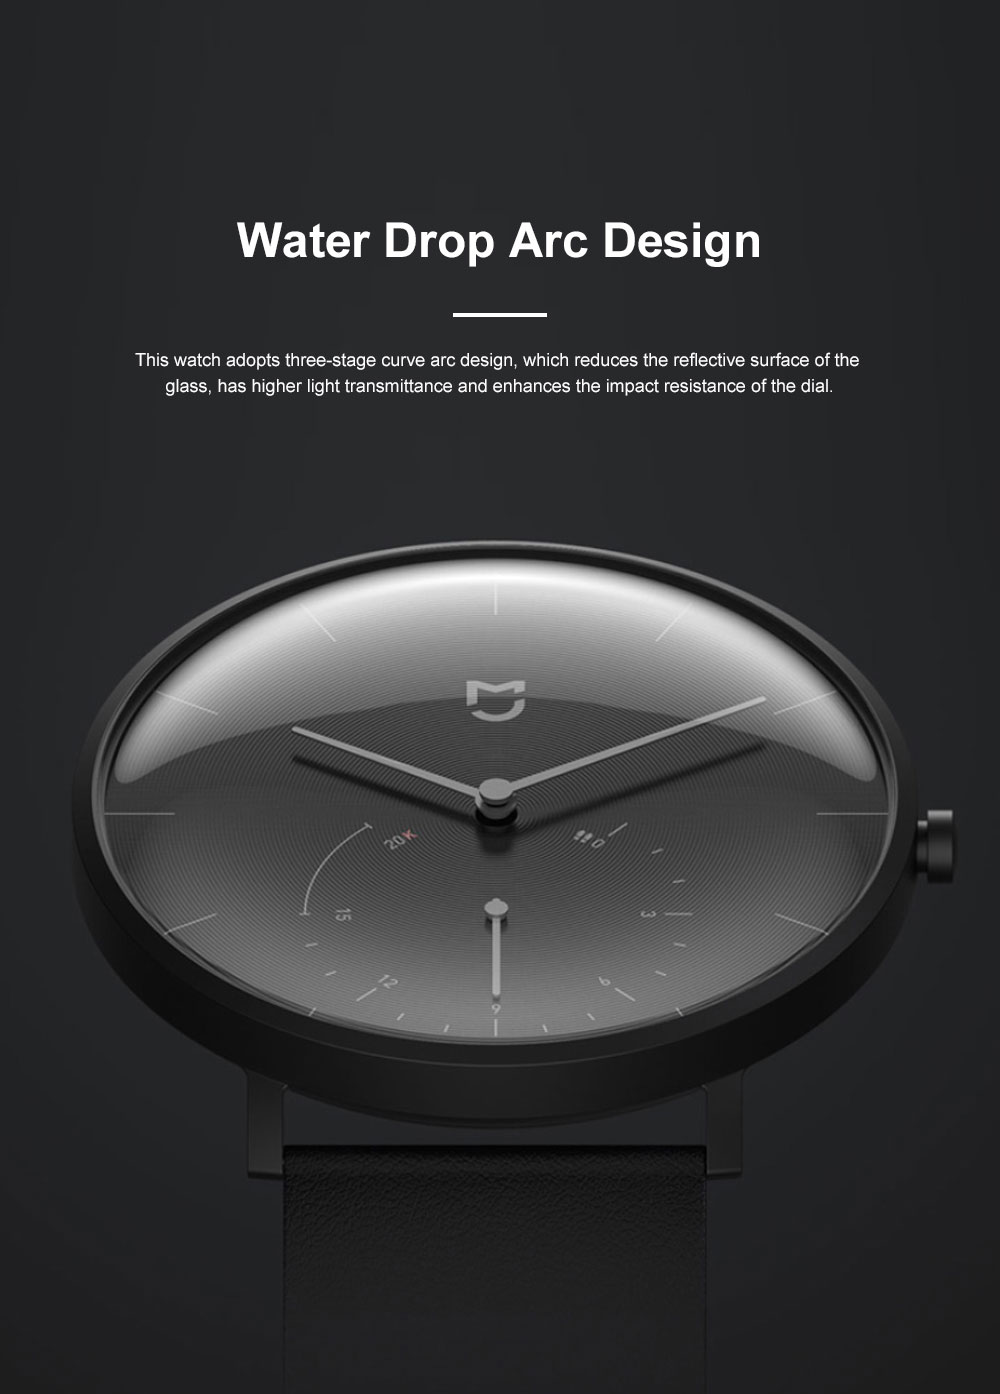 XIAOMI MIJIA Smart Quartz Watch Waterproof Android iOS Time Android Smartwatch with Waterproof Genuine Leather Band 4